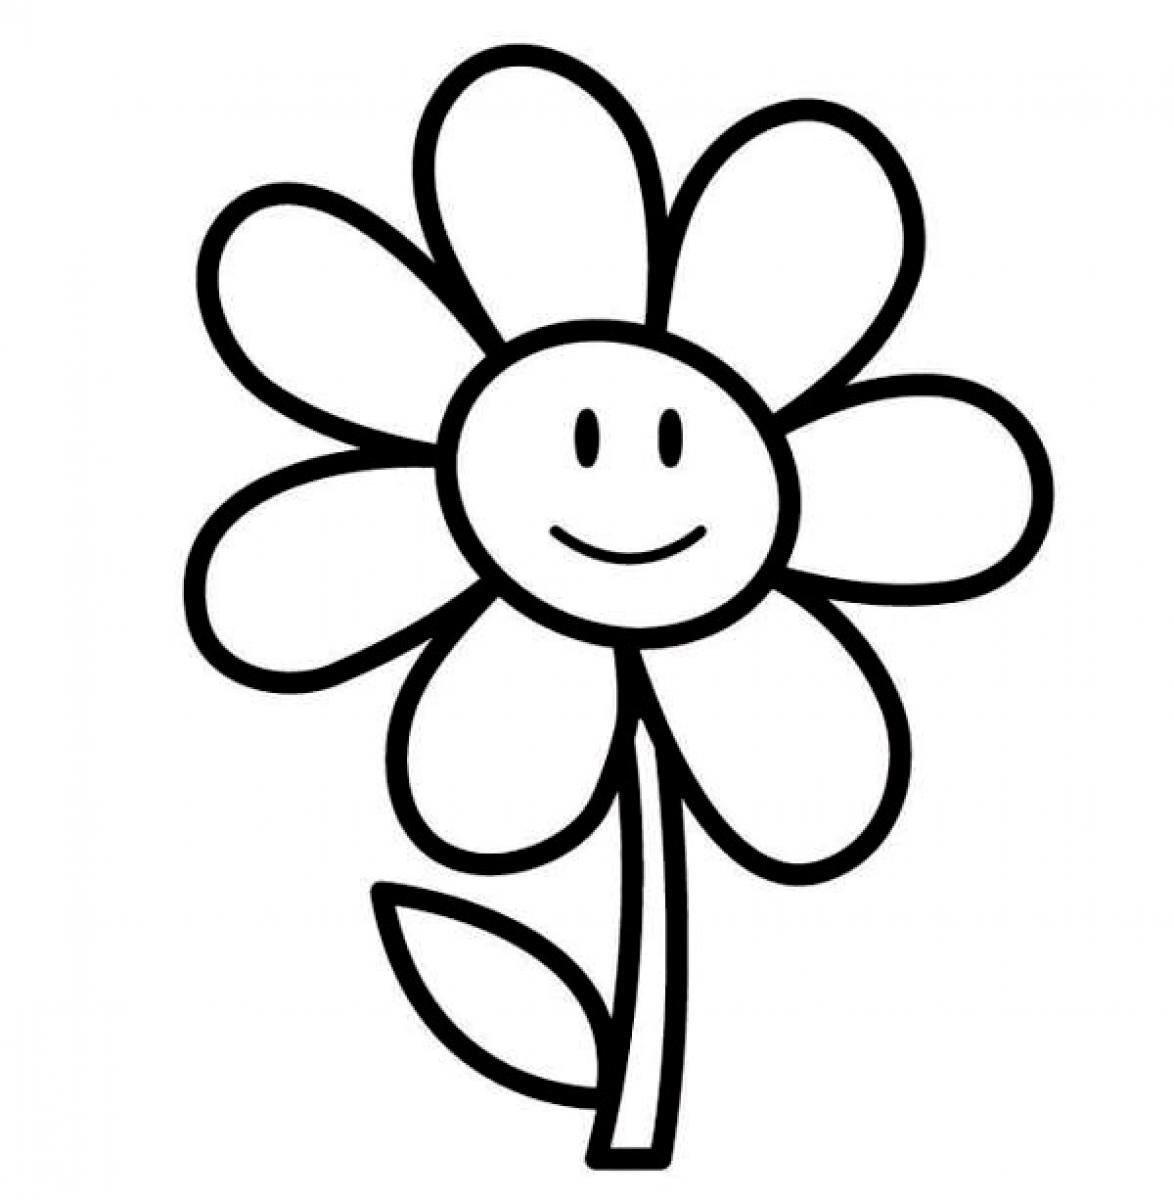 easy coloring pages of flowers easy coloring pages best coloring pages for kids easy of coloring flowers pages